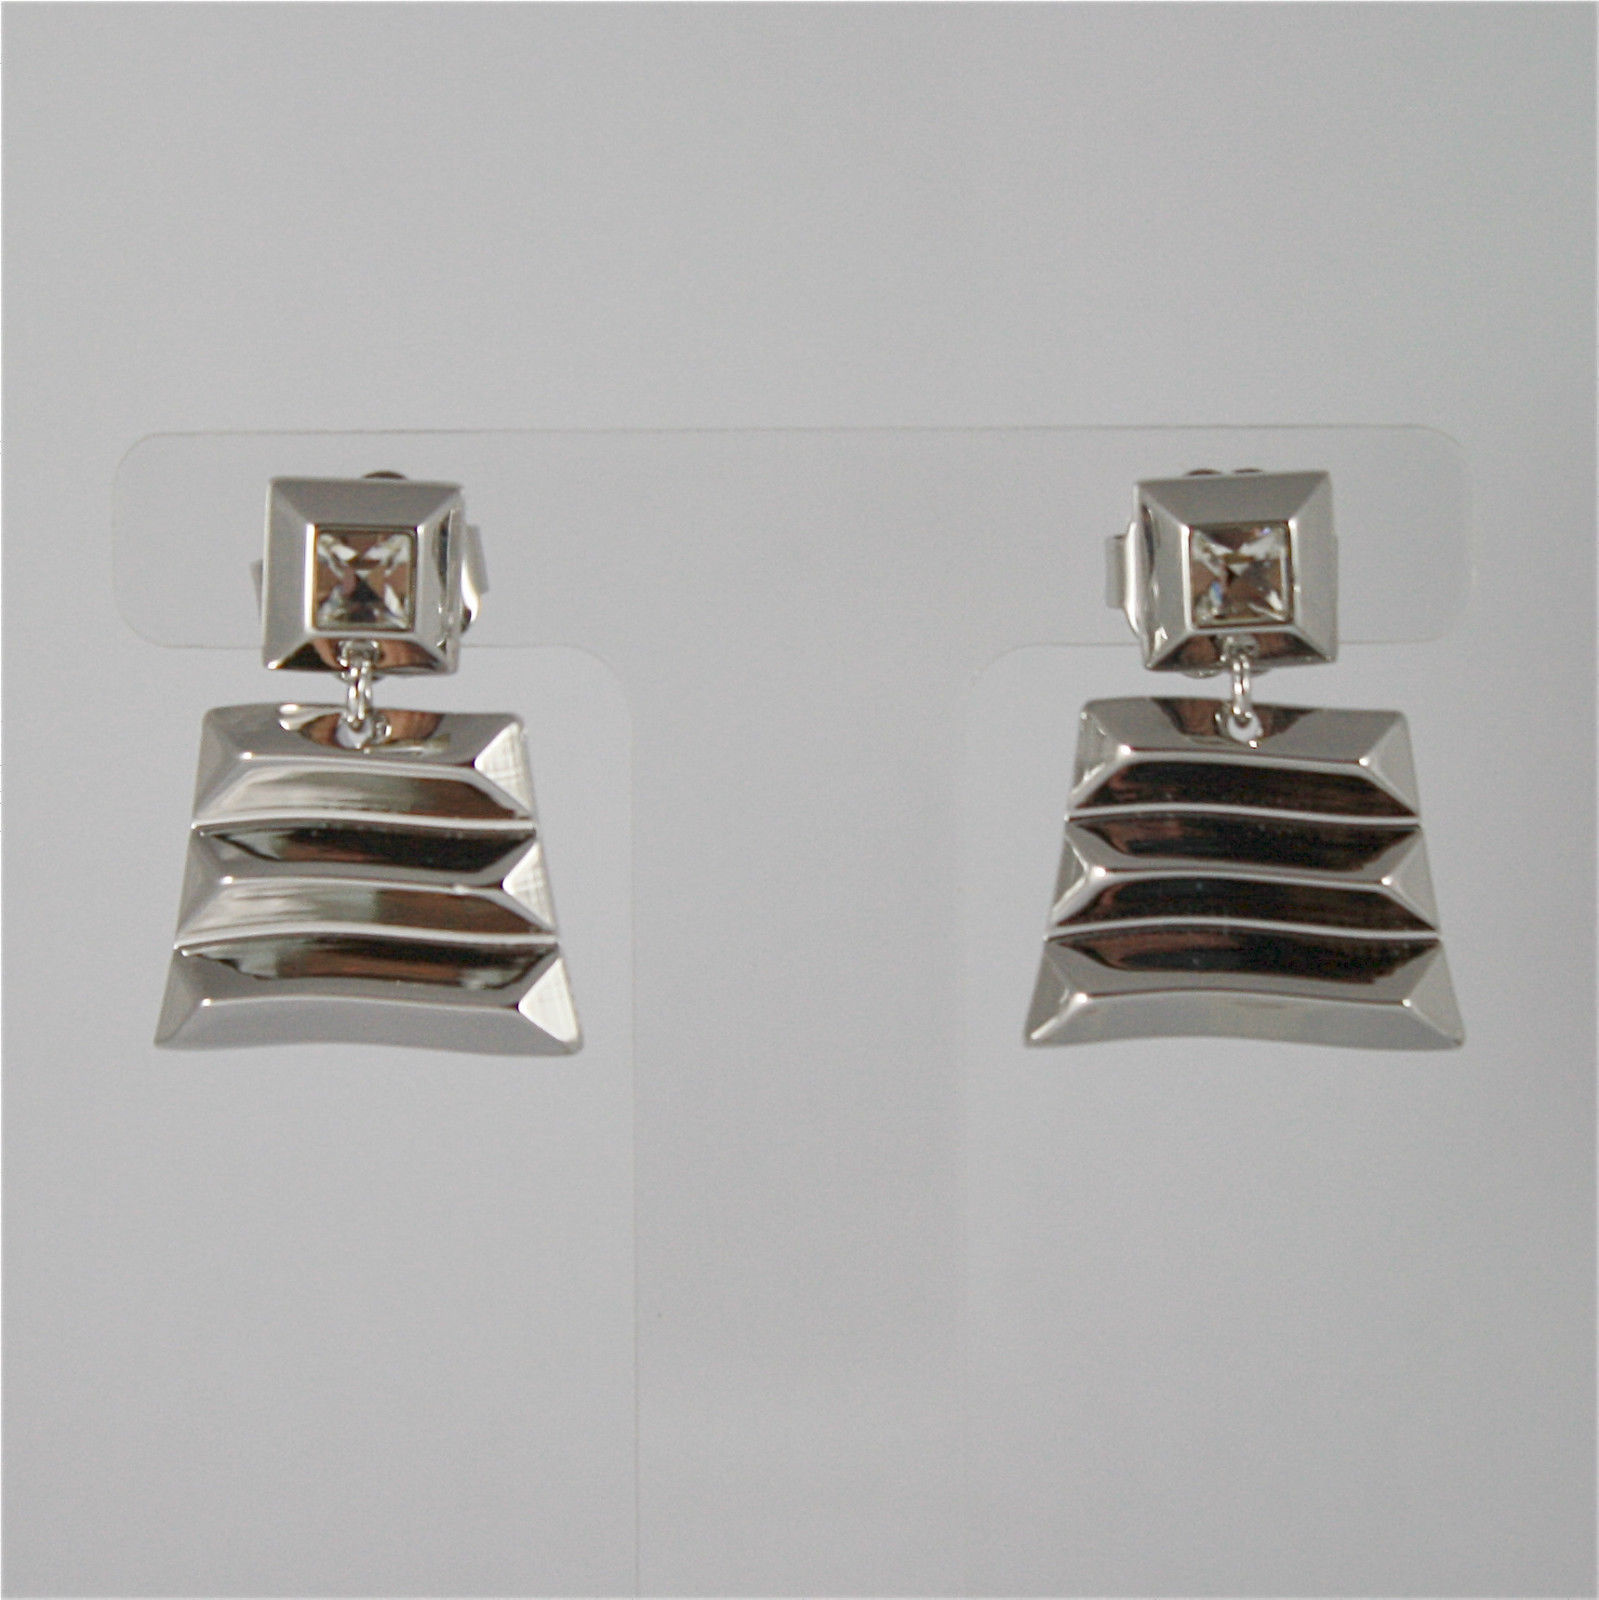 WHITE GOLD PLATED BRONZE REBECCA EARRINGS SAHARA BSAOBB06 MADE IN ITALY CRYSTAL